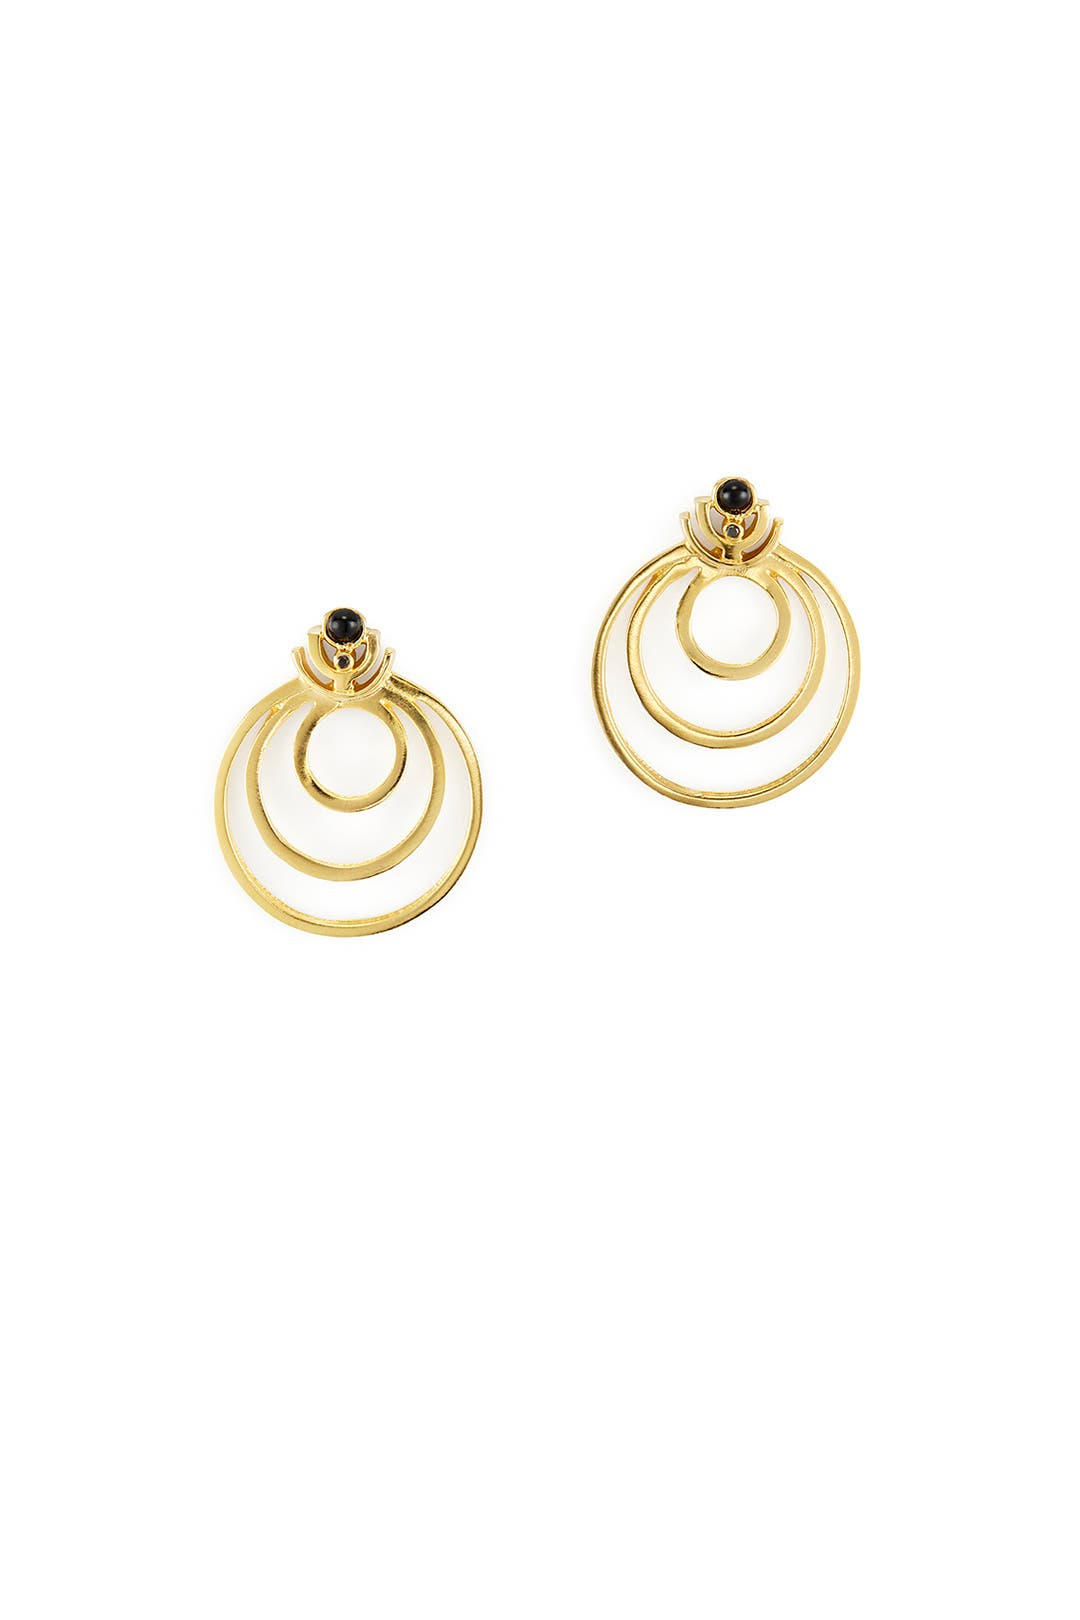 Dynasty Hoop Earrings by Gillian Steinhardt